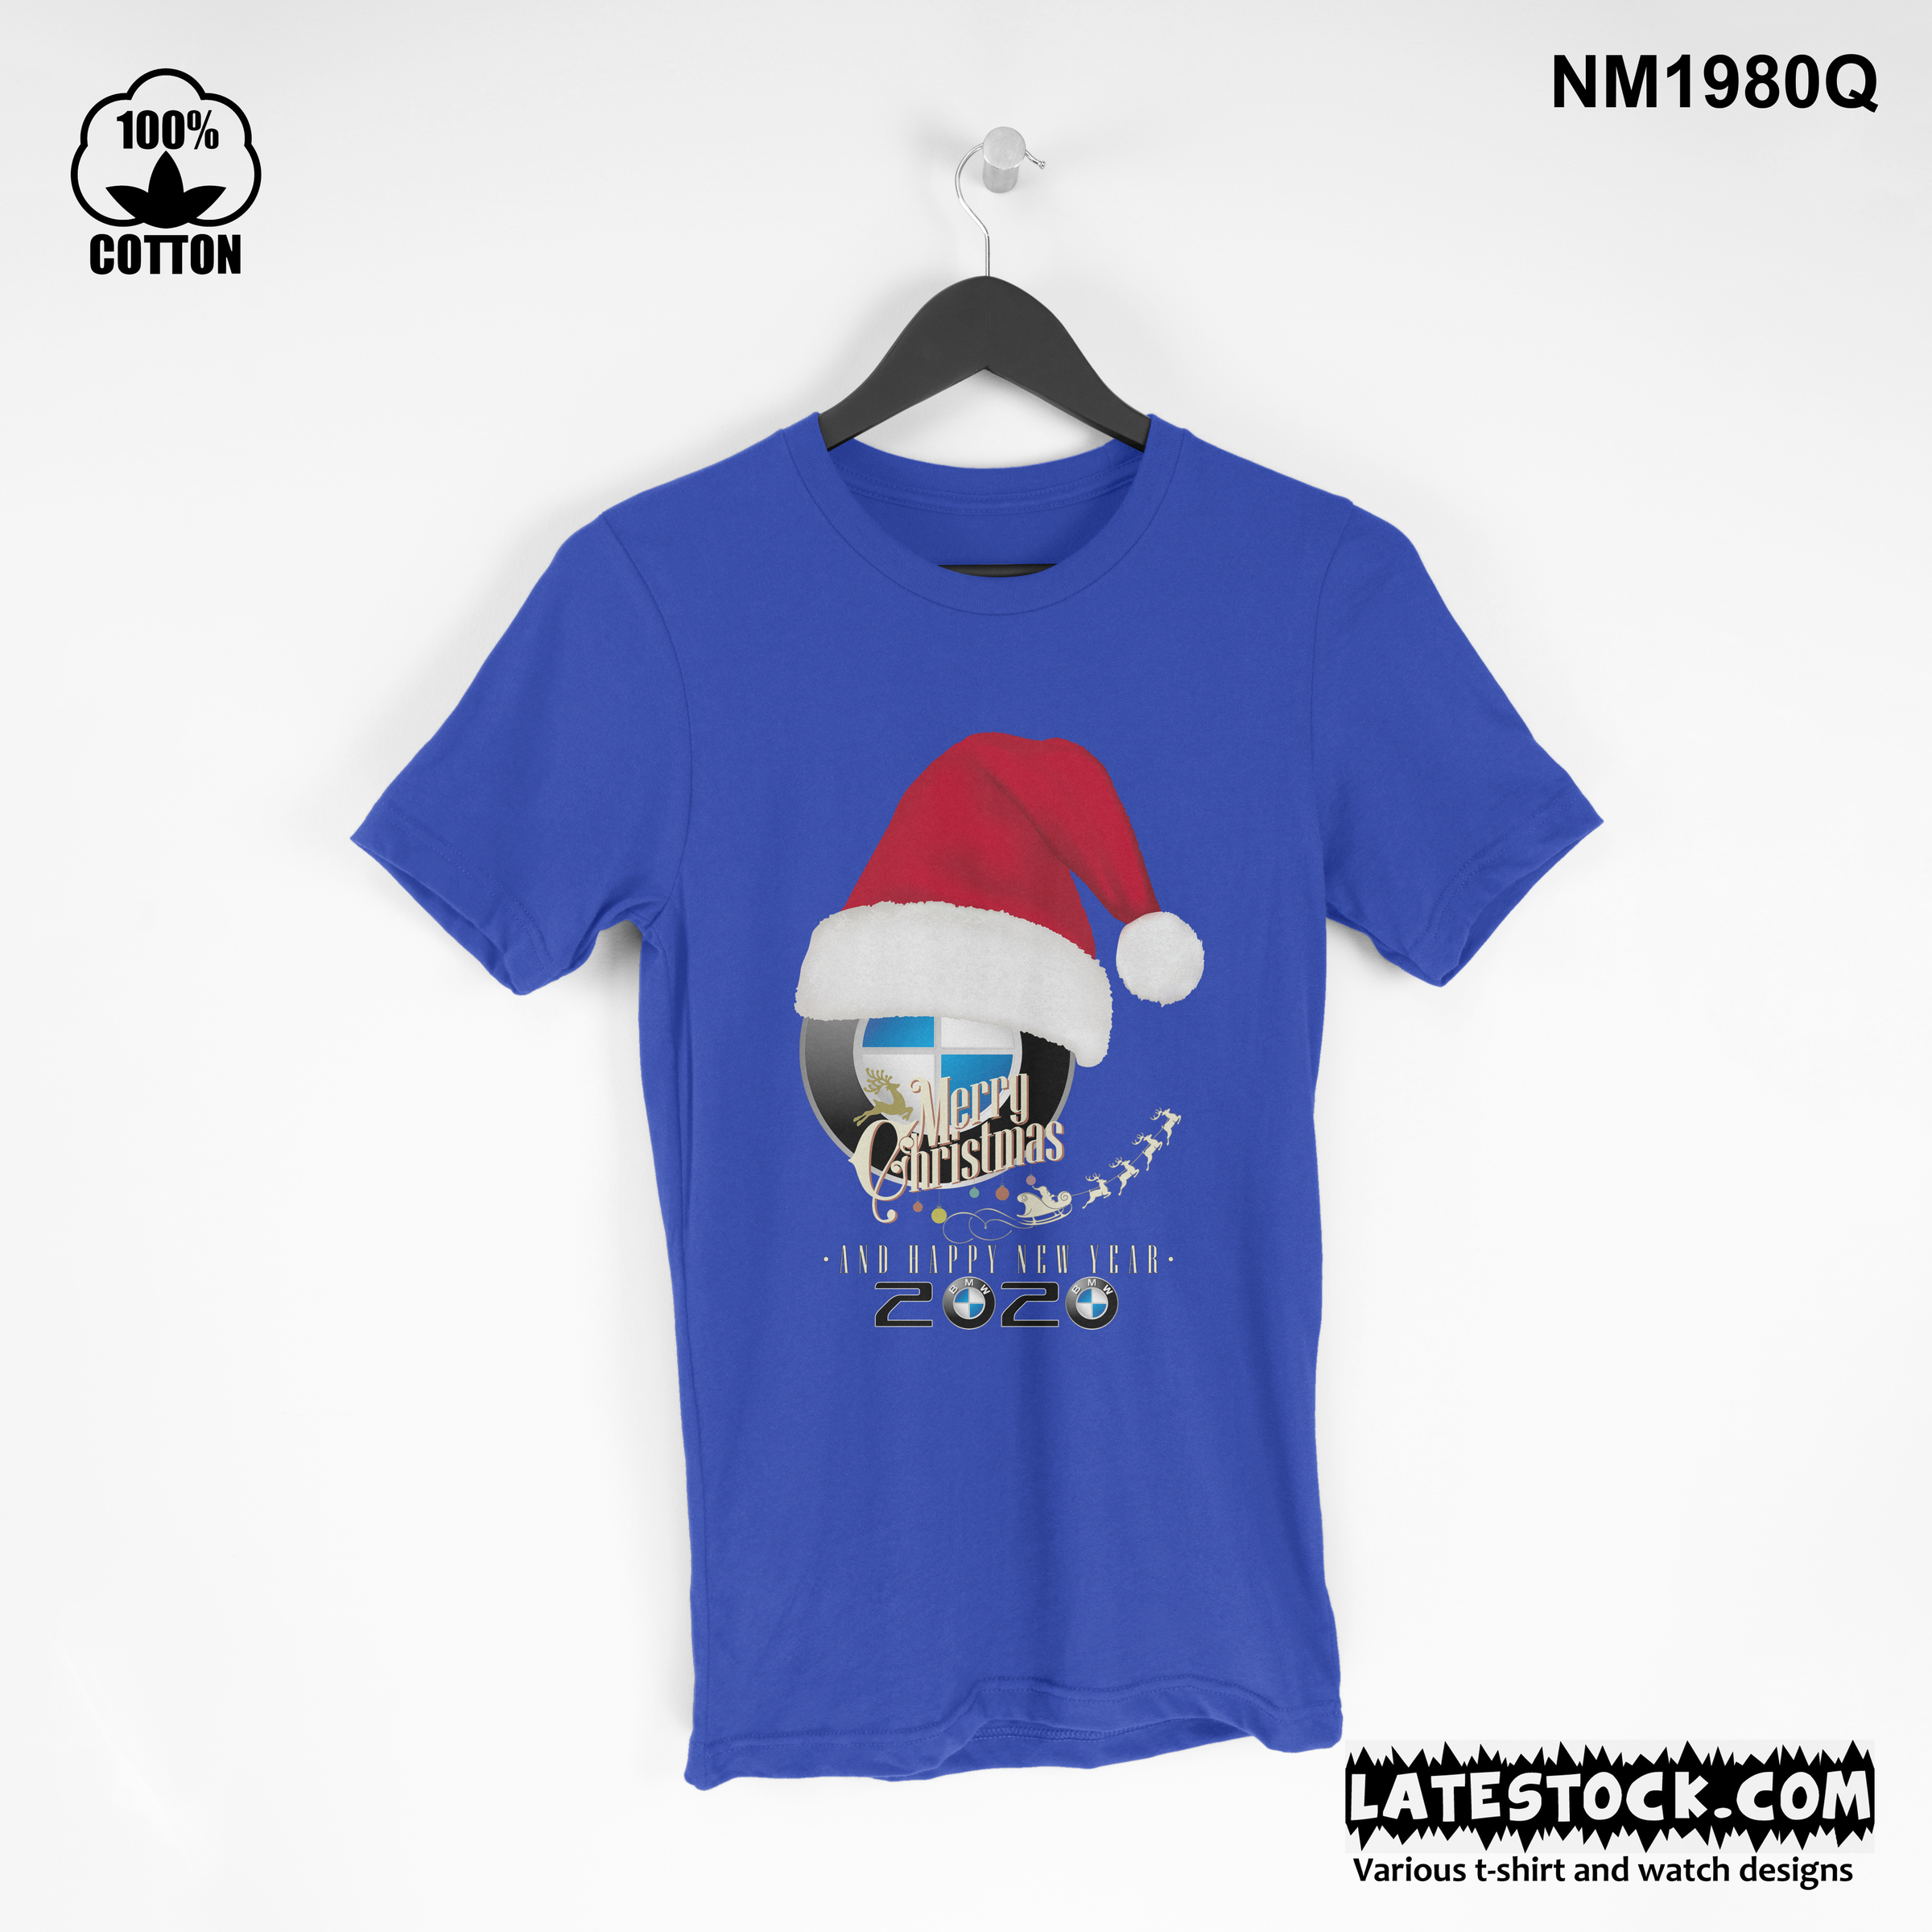 1.30 new Design BMW cristmas and new year t shirt Tee best gift dodger blue.jpg